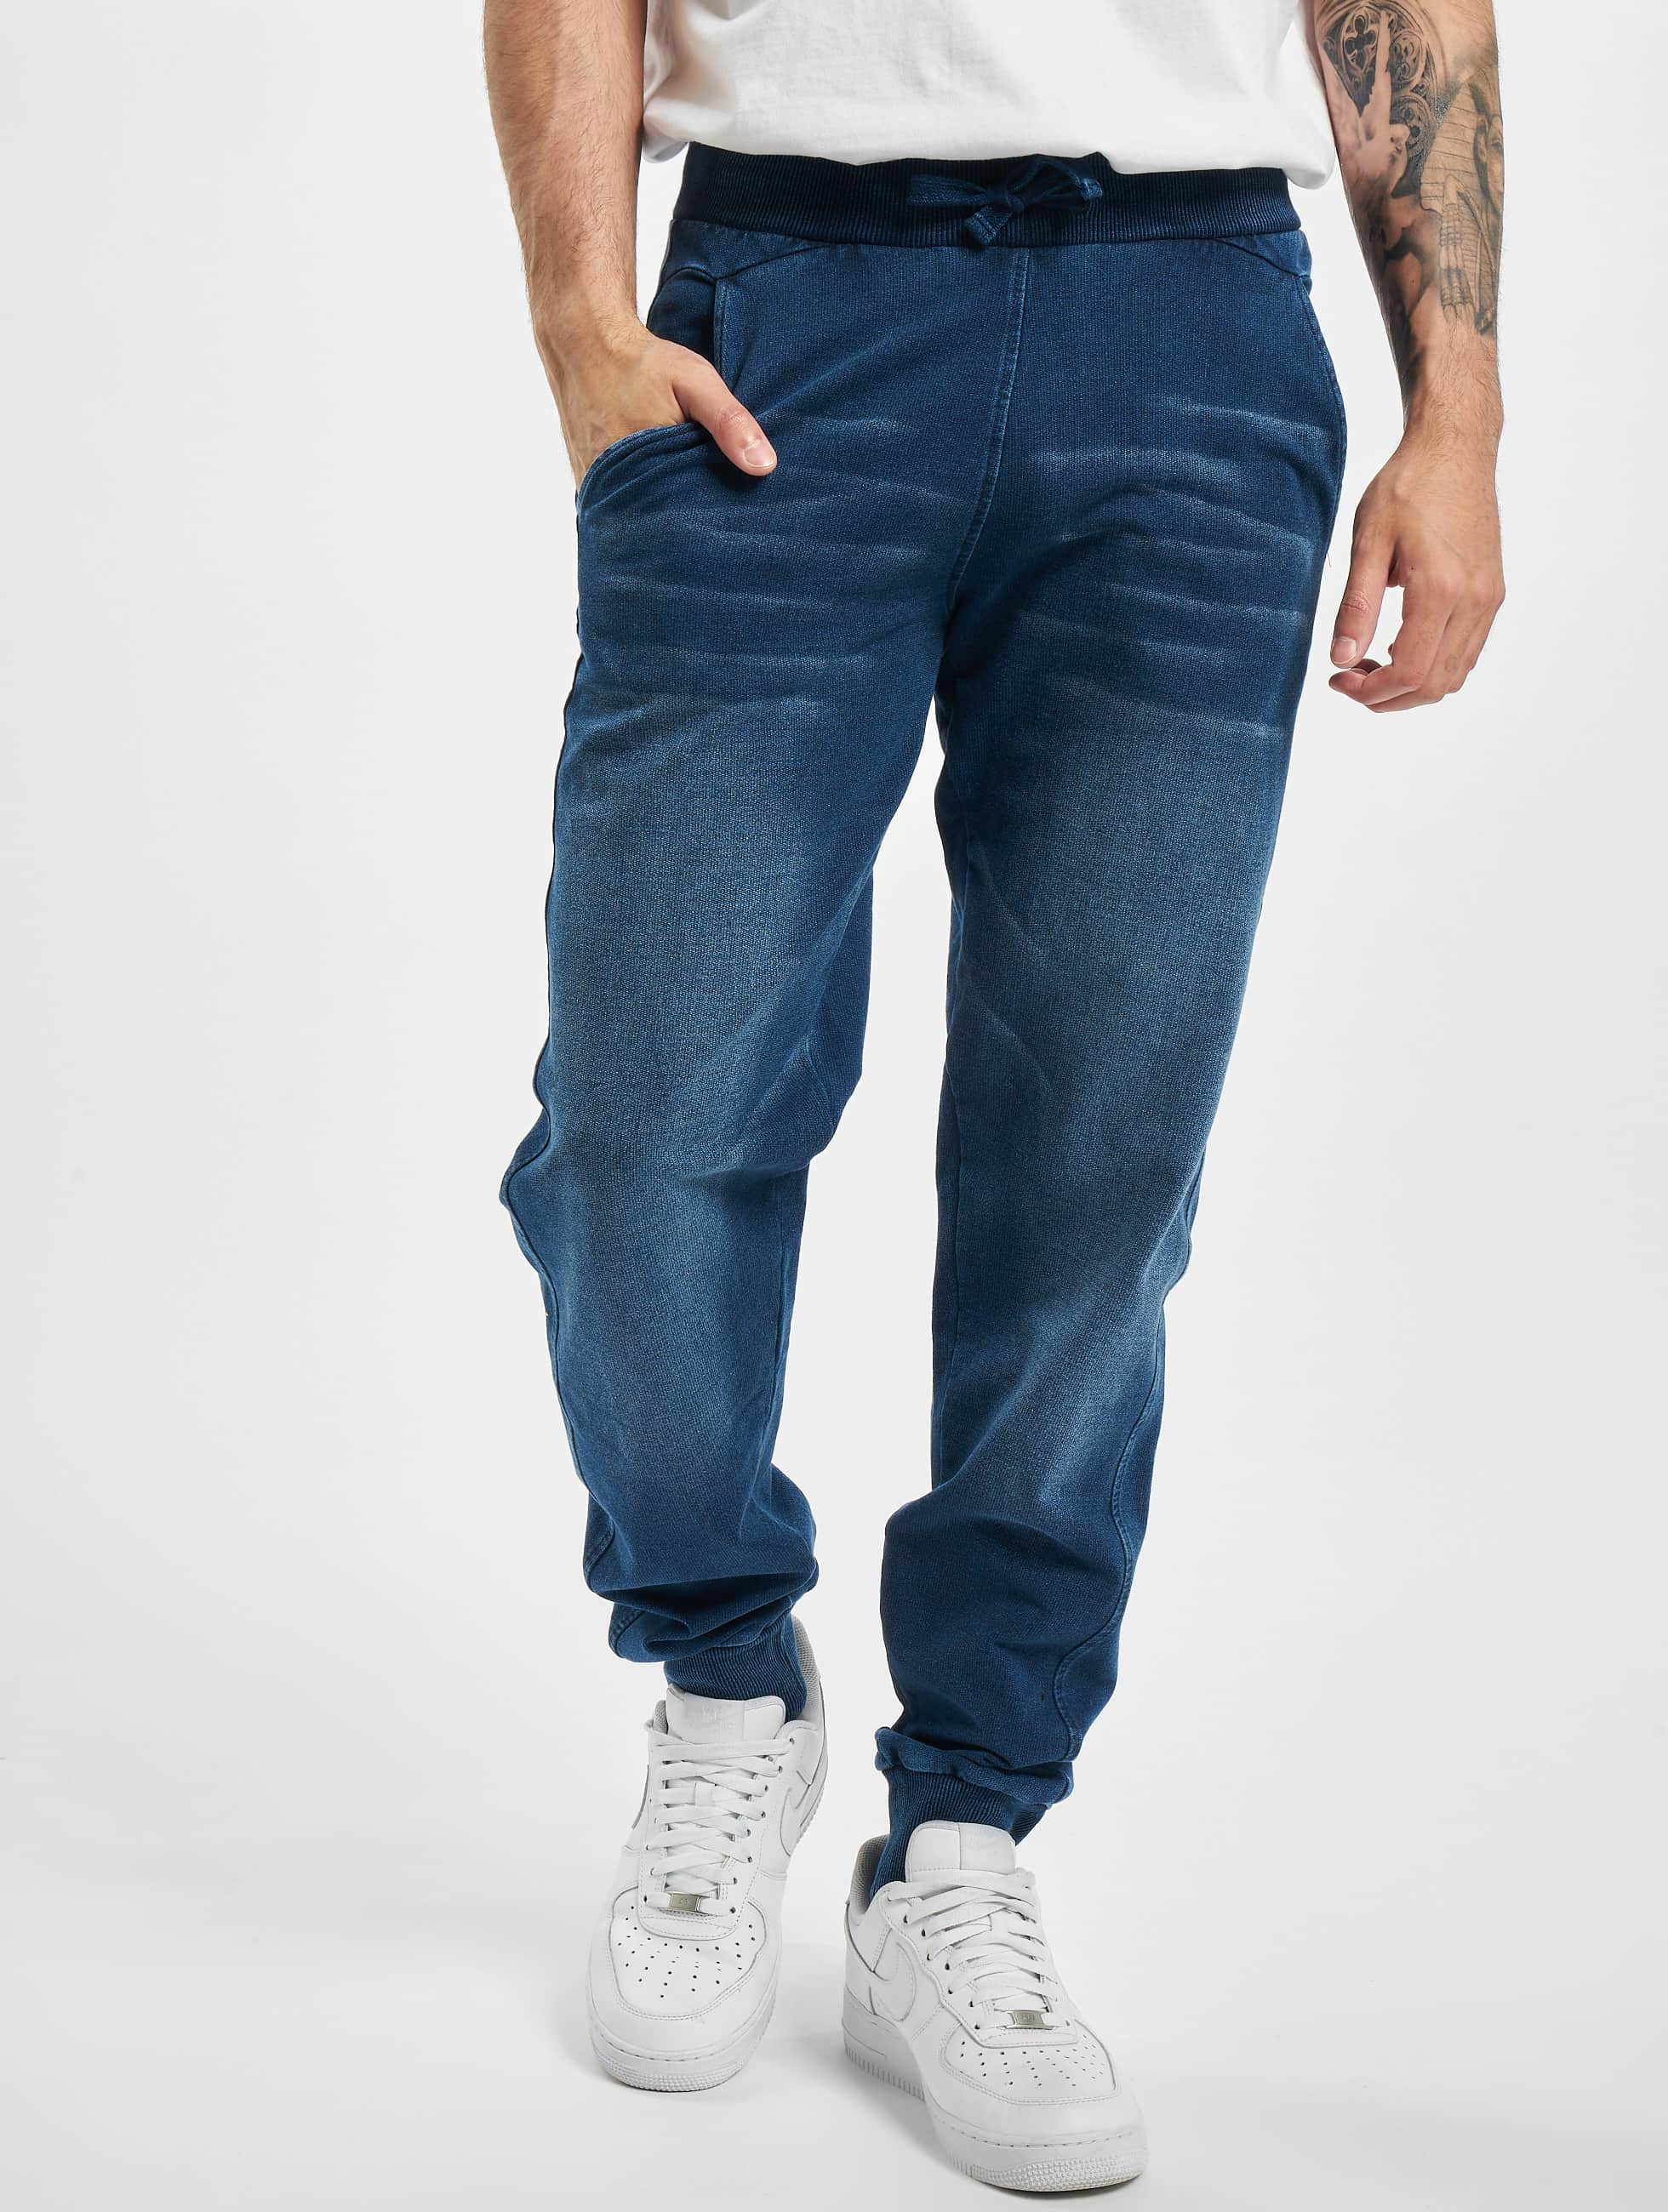 Urban Classics Jogginghose Denim blau